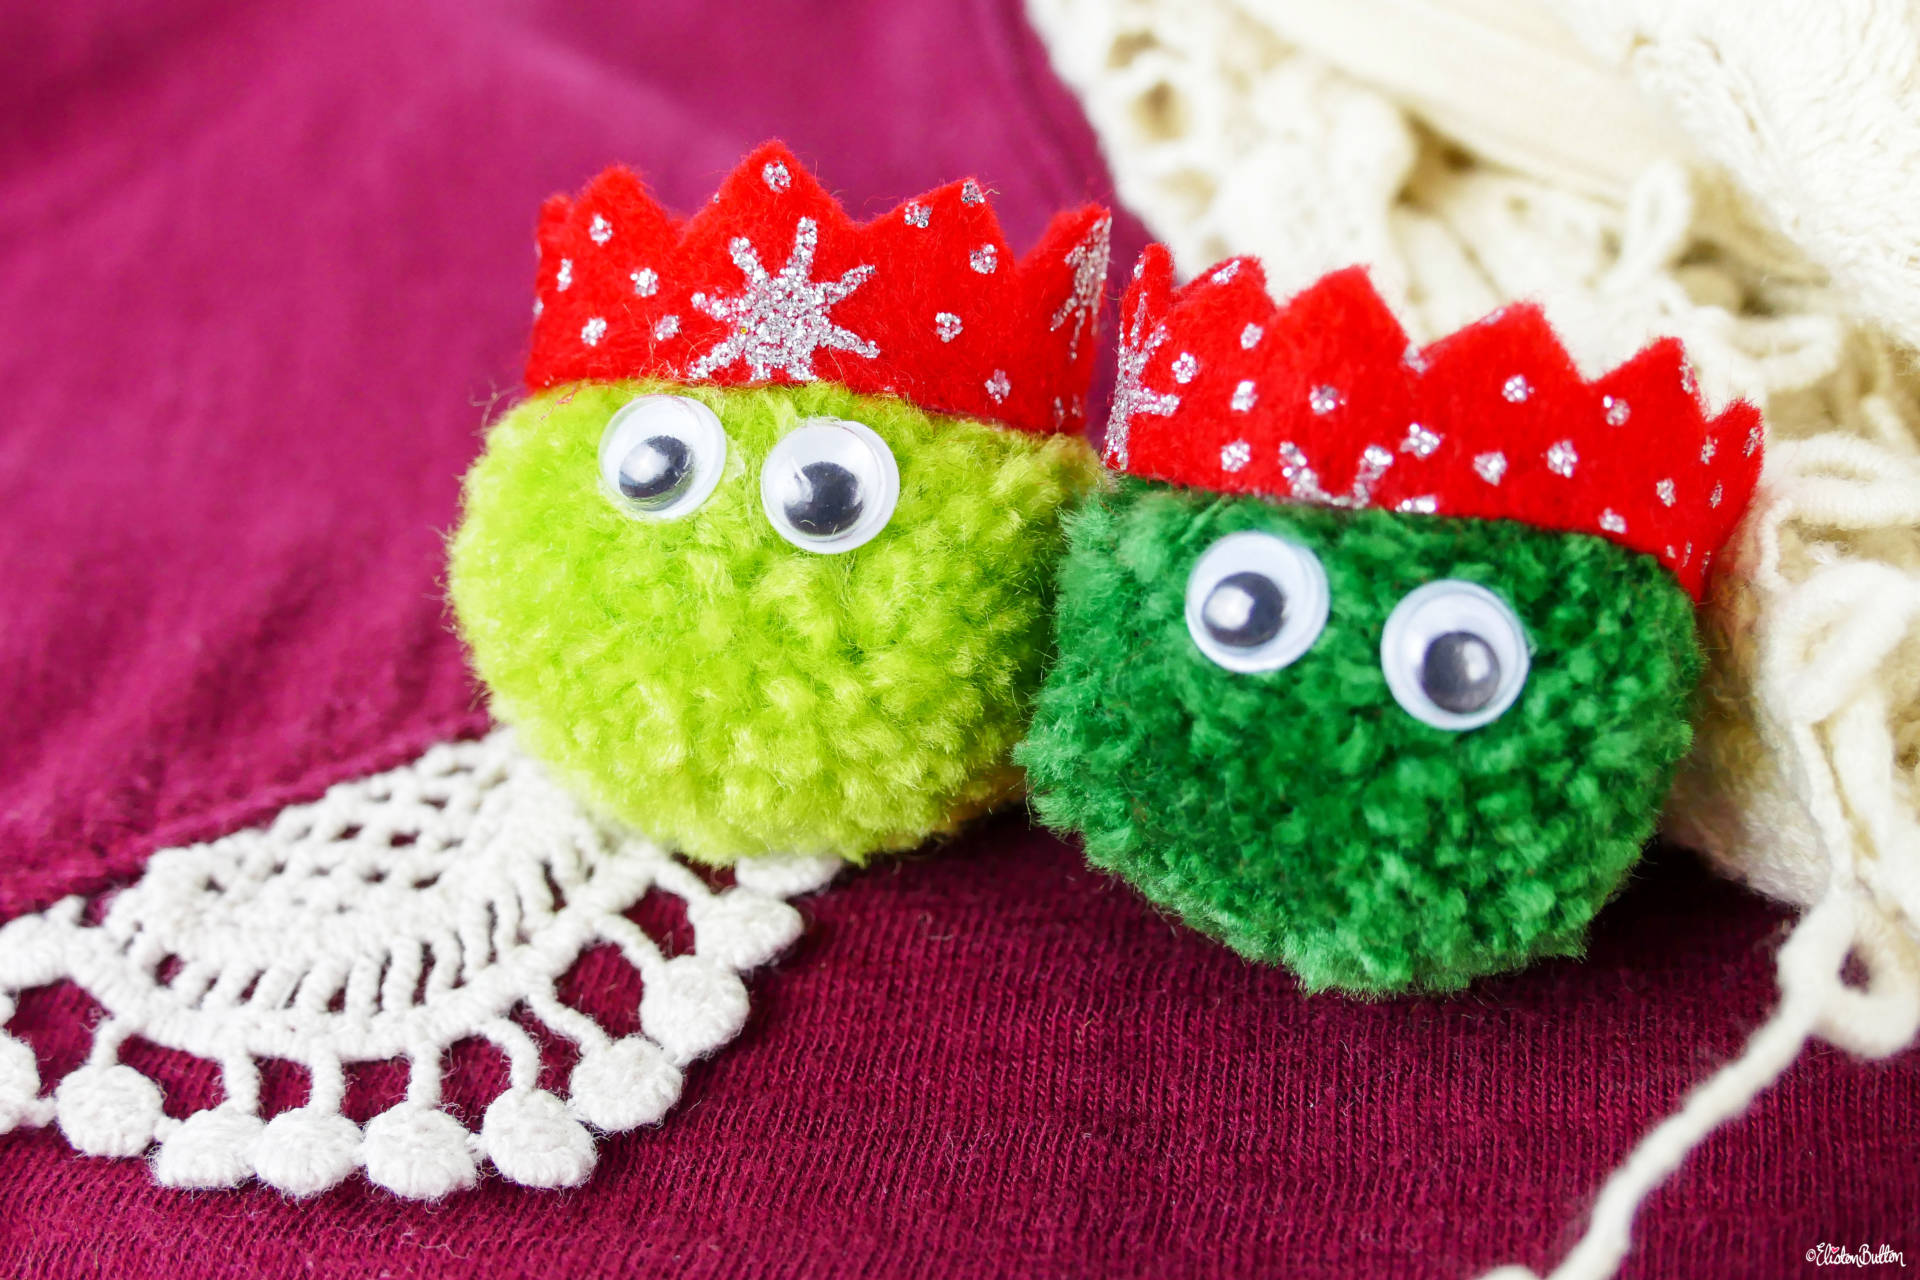 Dark and Light Green Christmas Sprout Pom Pom Brooches with Red Glitter Party Hats - Christmas Sprout Pom Pom Brooches! at www.elistonbutton.com - Eliston Button - That Crafty Kid – Art, Design, Craft & Adventure.